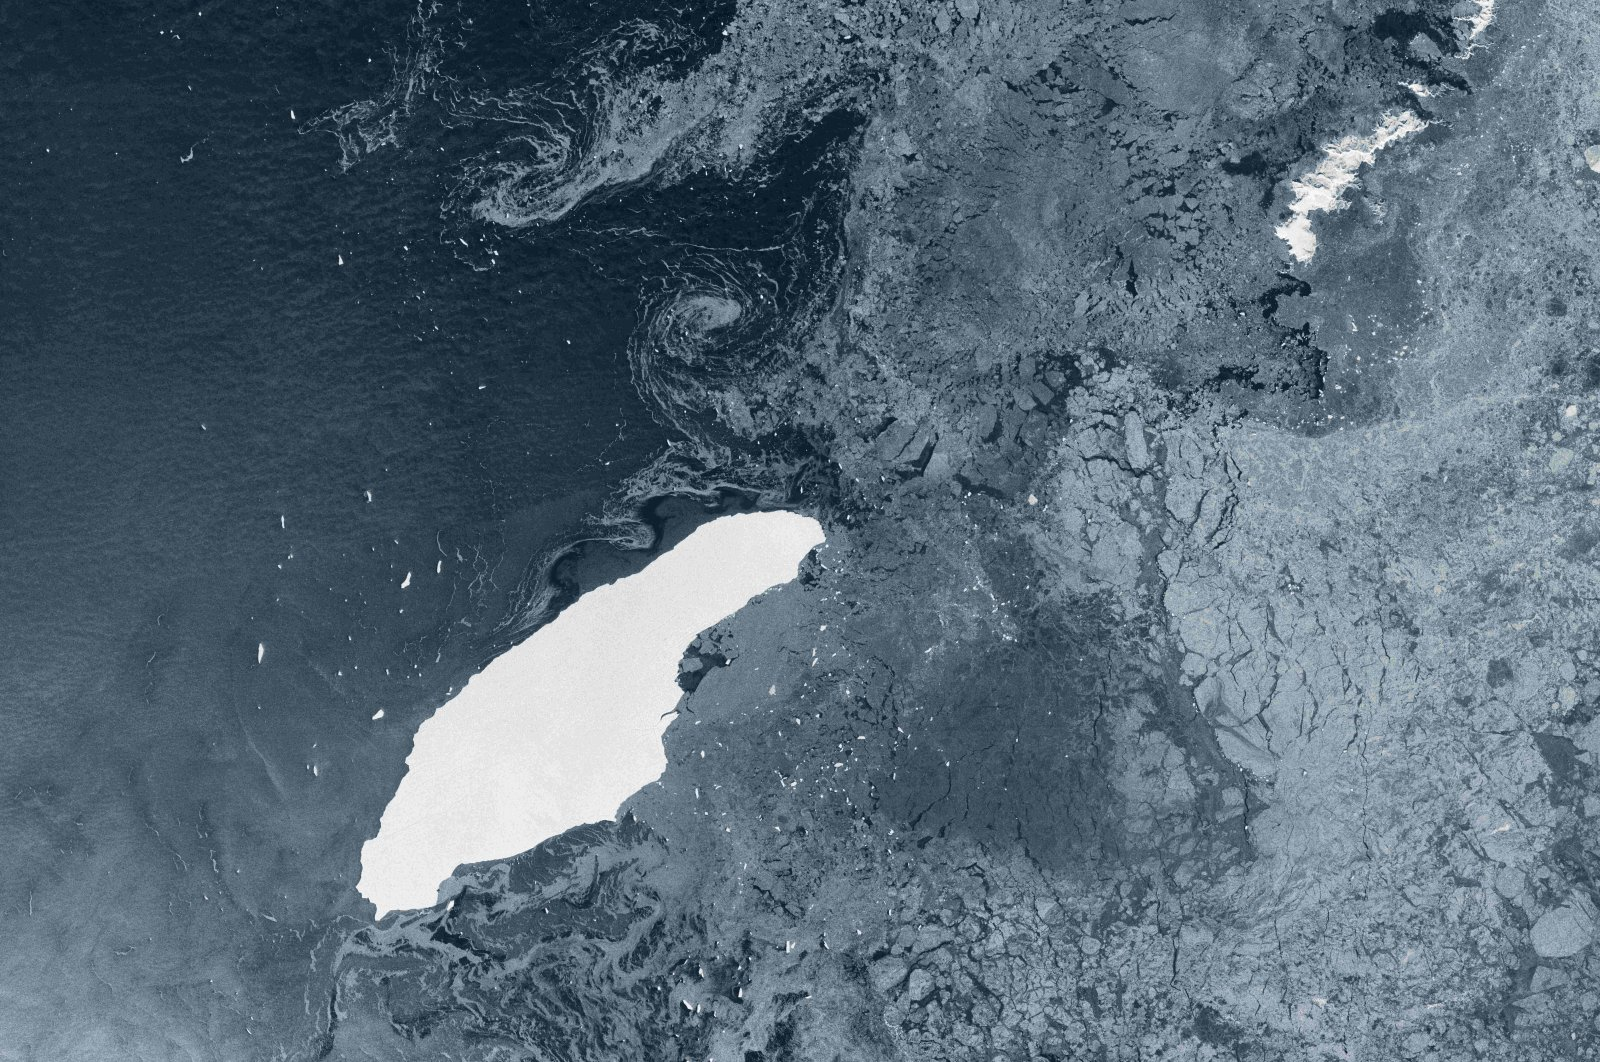 An image captured by the Copernicus Sentinel-1 radar mission on July 5, 2020, shows the parent berg, A-68A, which is about twice the size of Luxemburg and one of the largest icebergs on record. (Handout Photo by the European Space Agency / AFP)